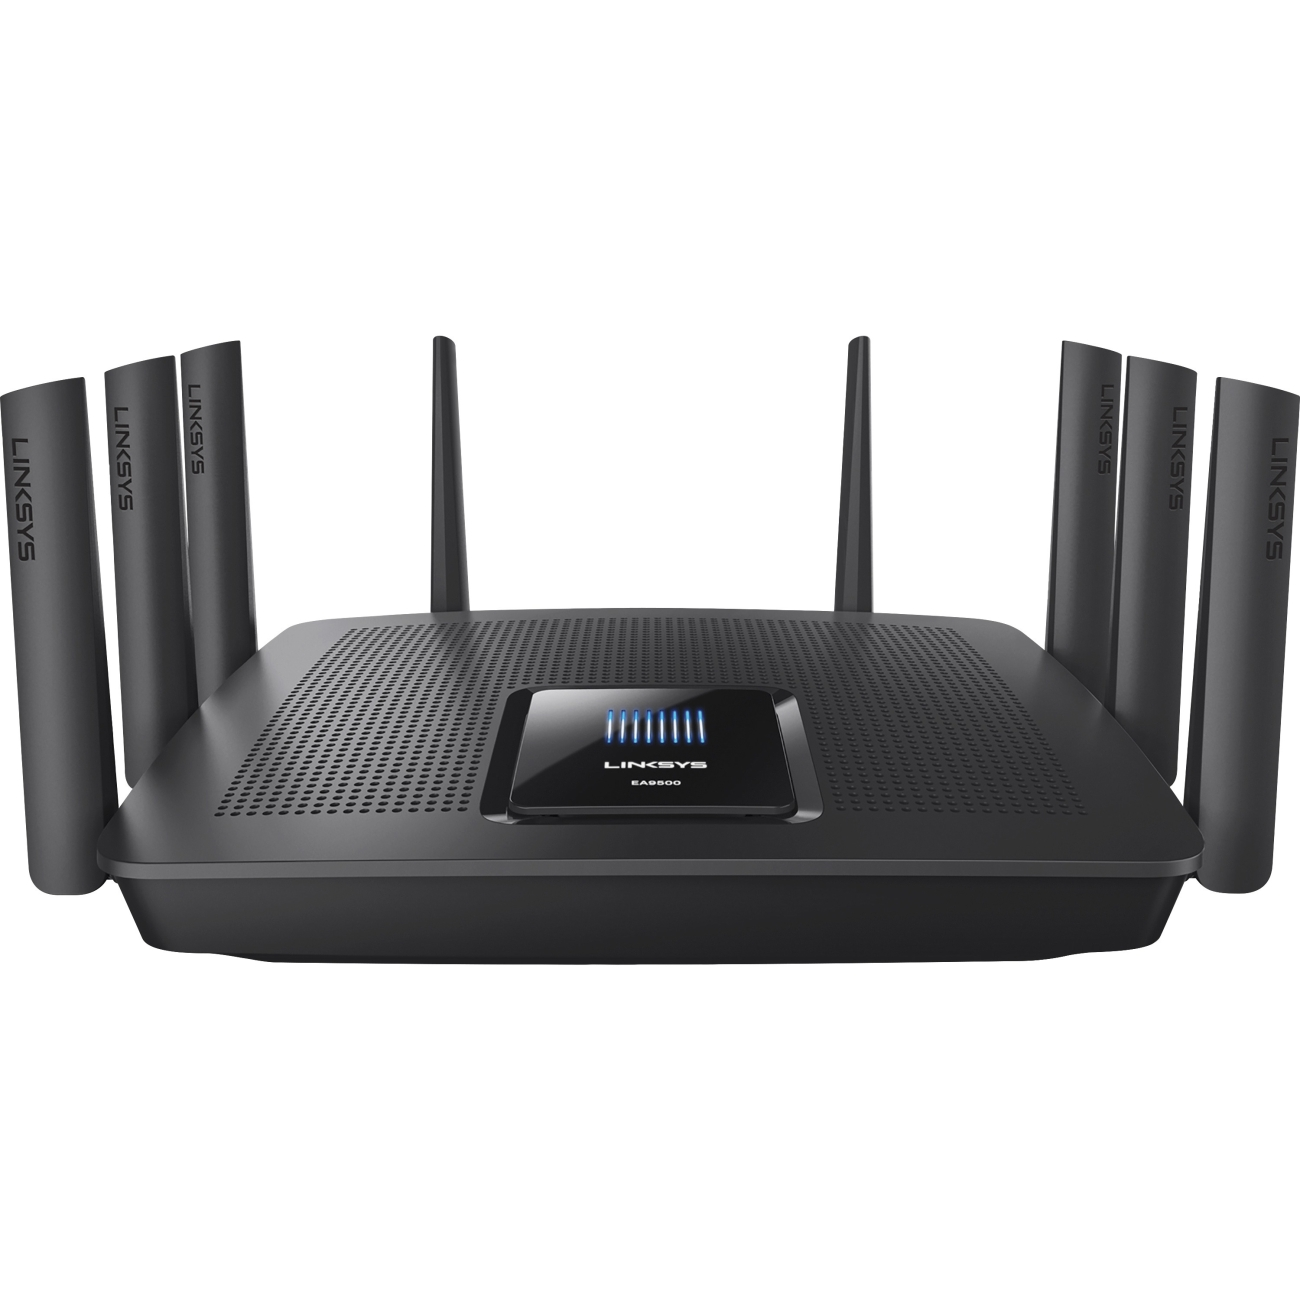 Linksys AC5400 Mu-Mimo Wi-Fi Router (EA9500) by Linksys